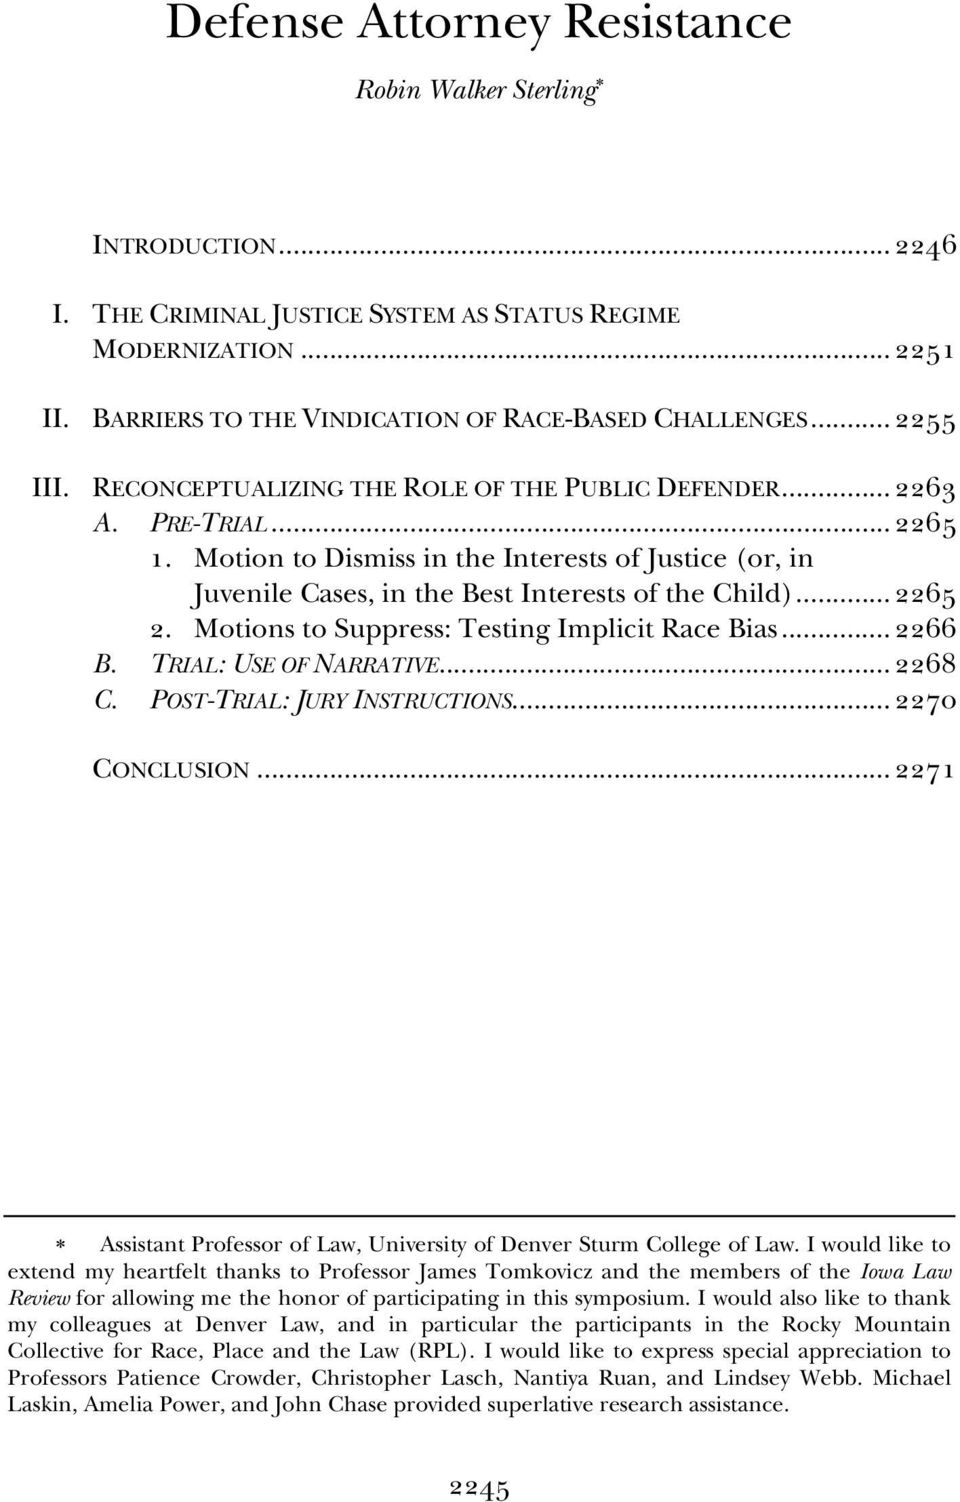 Motion to Dismiss in the Interests of Justice (or, in Juvenile Cases, in the Best Interests of the Child)... 2265 2. Motions to Suppress: Testing Implicit Race Bias... 2266 B. TRIAL: USE OF NARRATIVE.